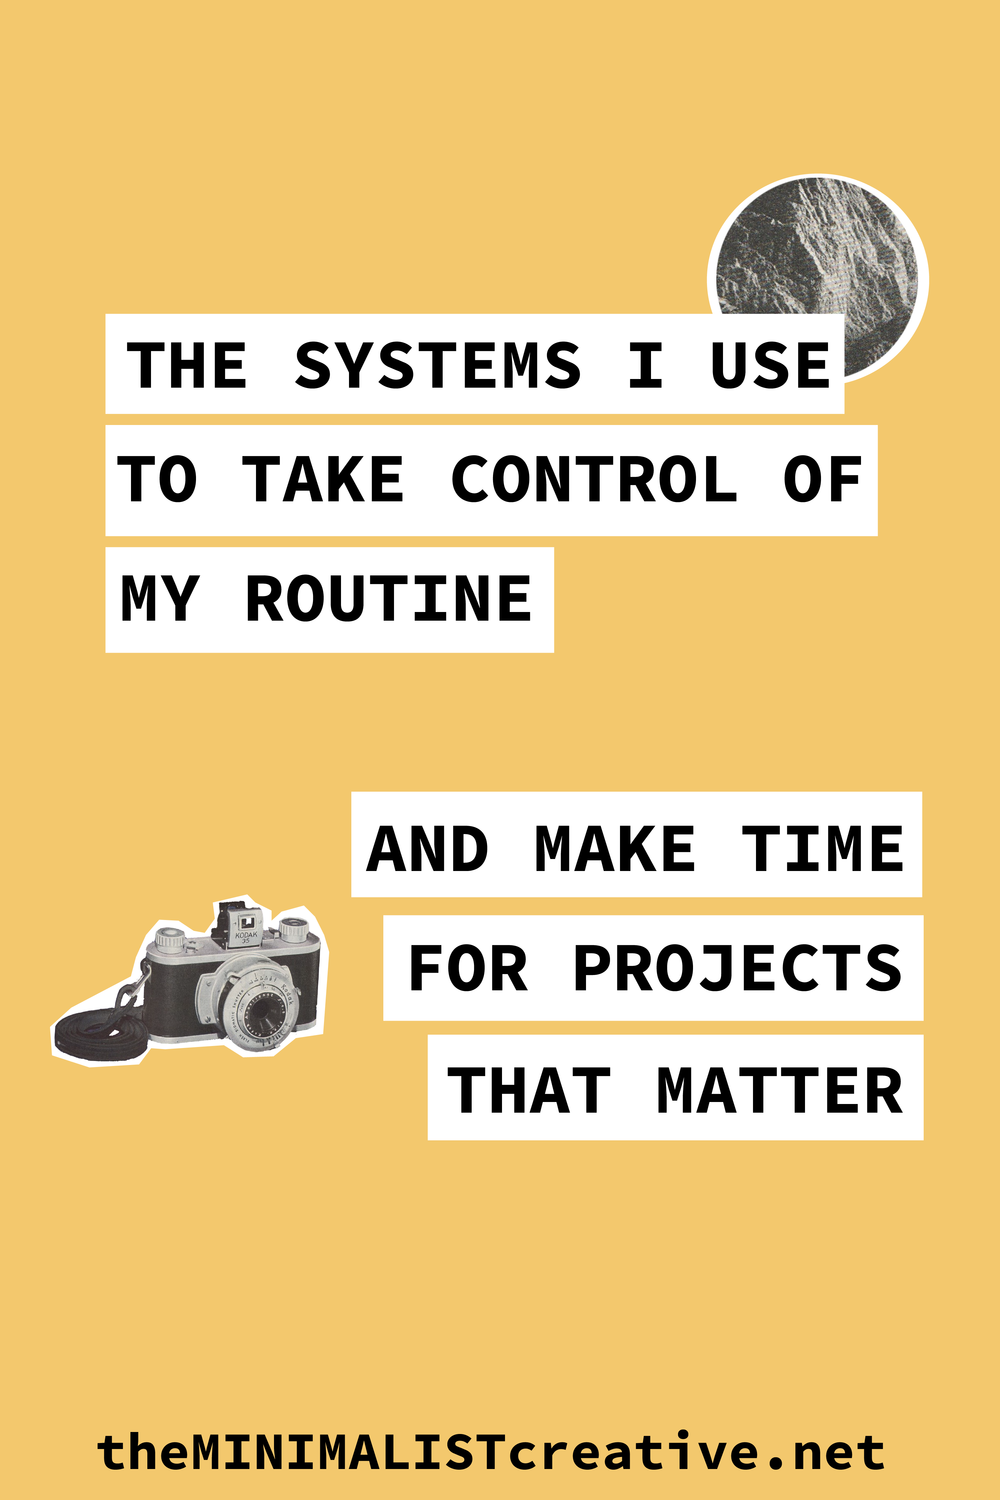 The Systems I Use To Take Control of My Routine and Make Time for Projects That Matter